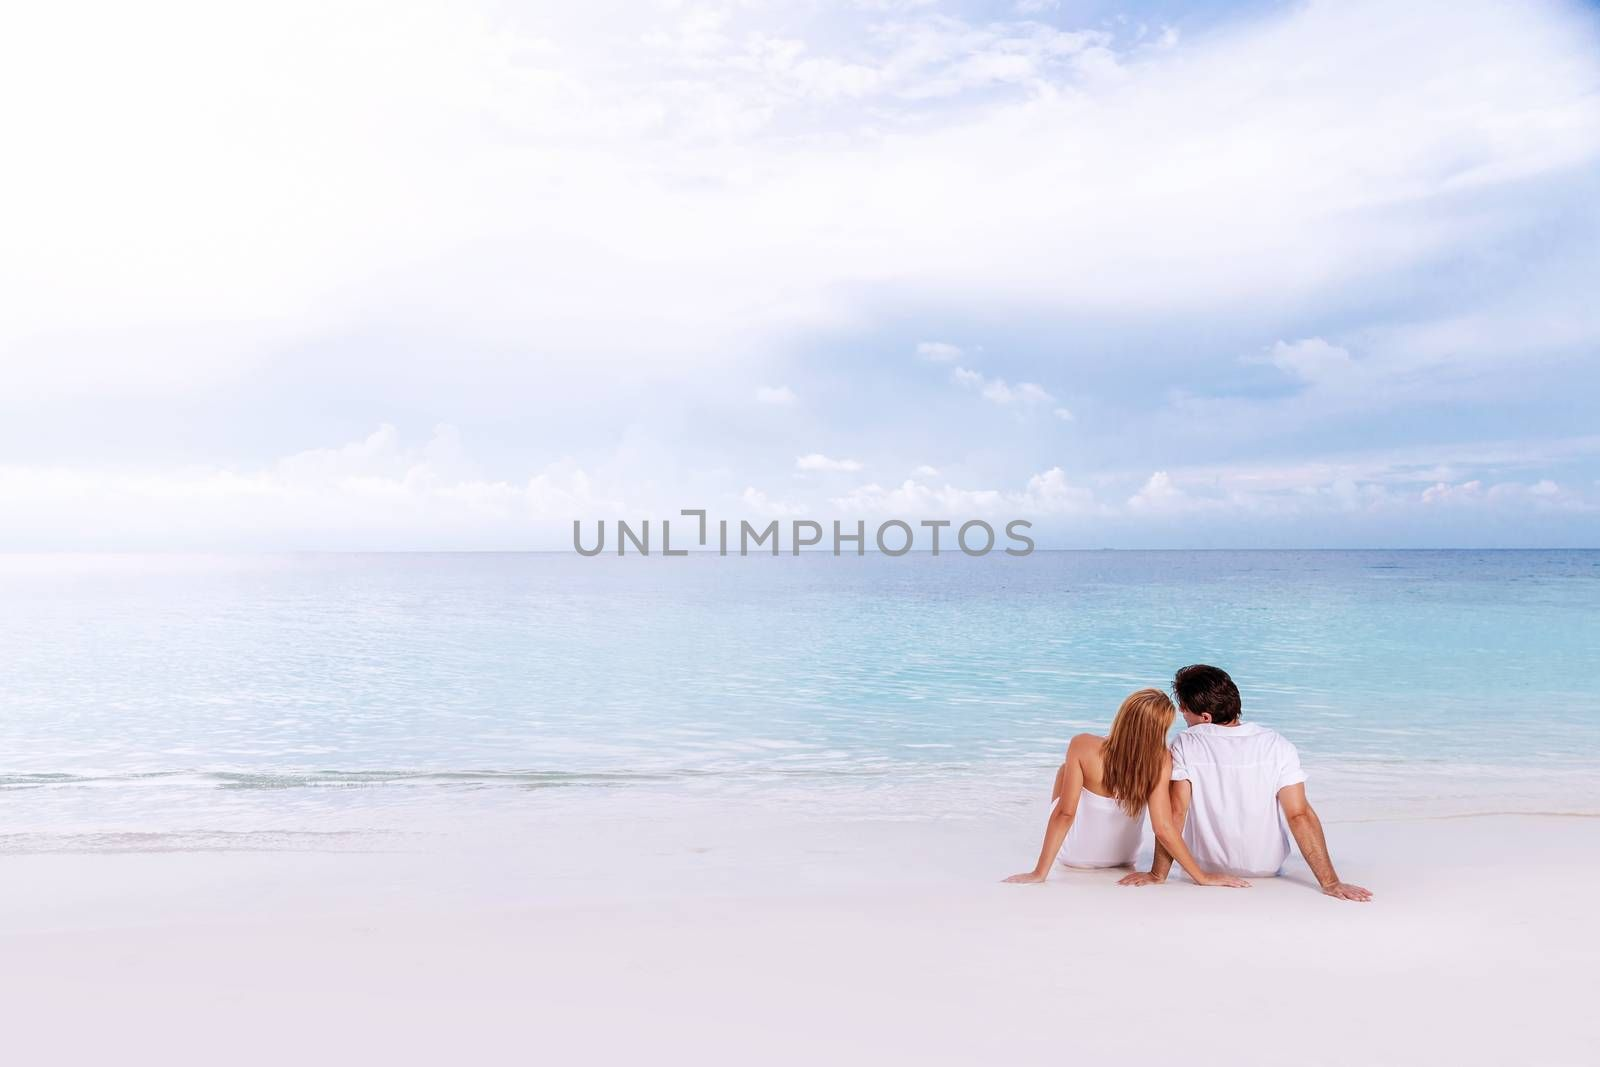 Romantic couple sitting on the beach and enjoying beautiful seaview, side view, spending time together, summer vacation concept